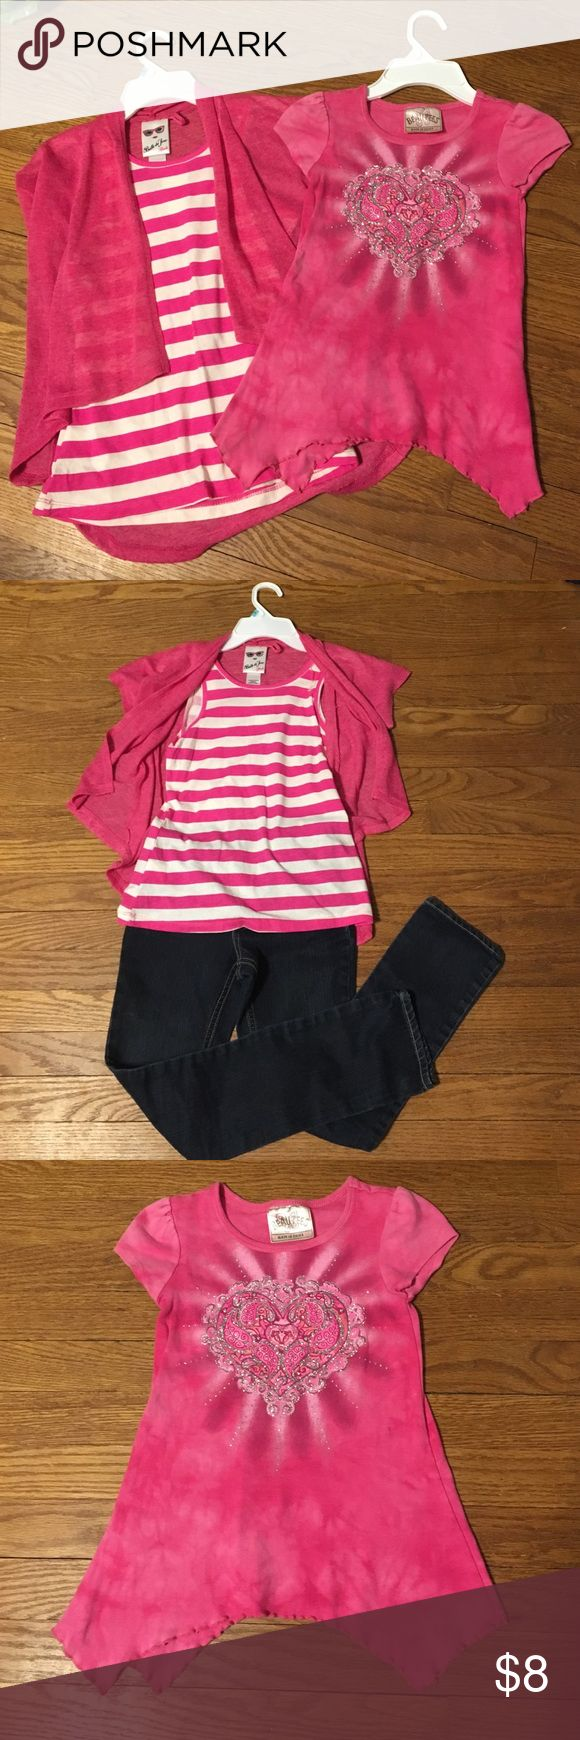 2 pink tops Pink, light sweater with striped tank underneath. Size girls medium.  They can be worn separate or together. Second top is an embellished heart with silver accents. Size 6X Shirts & Tops Tees - Short Sleeve